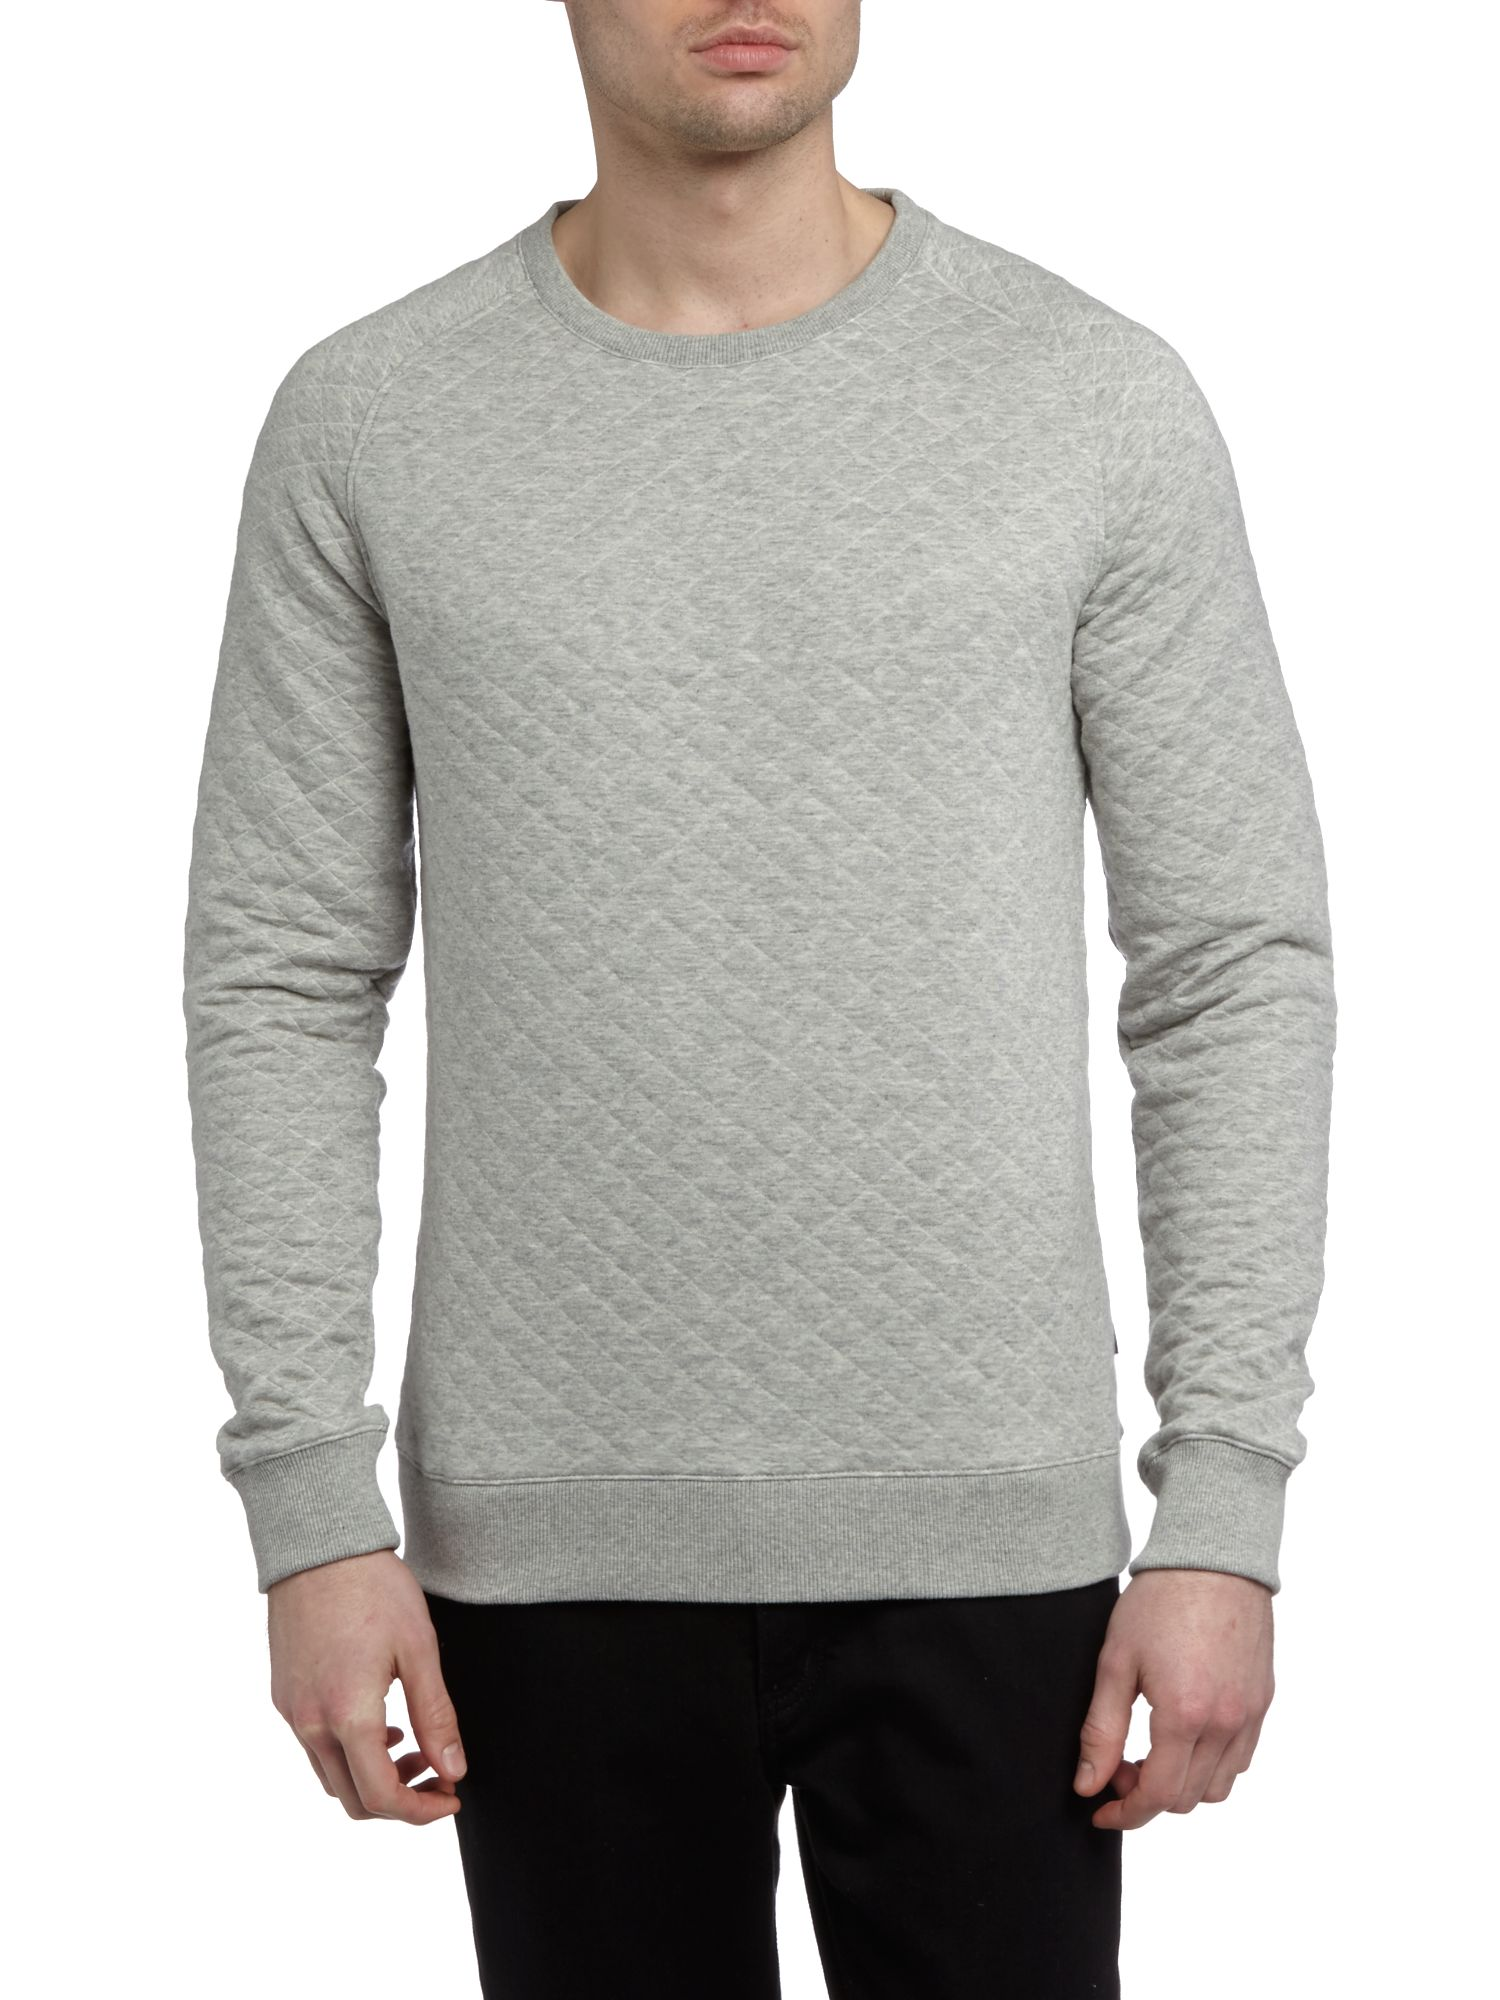 Crew neck quilted sweatshirt